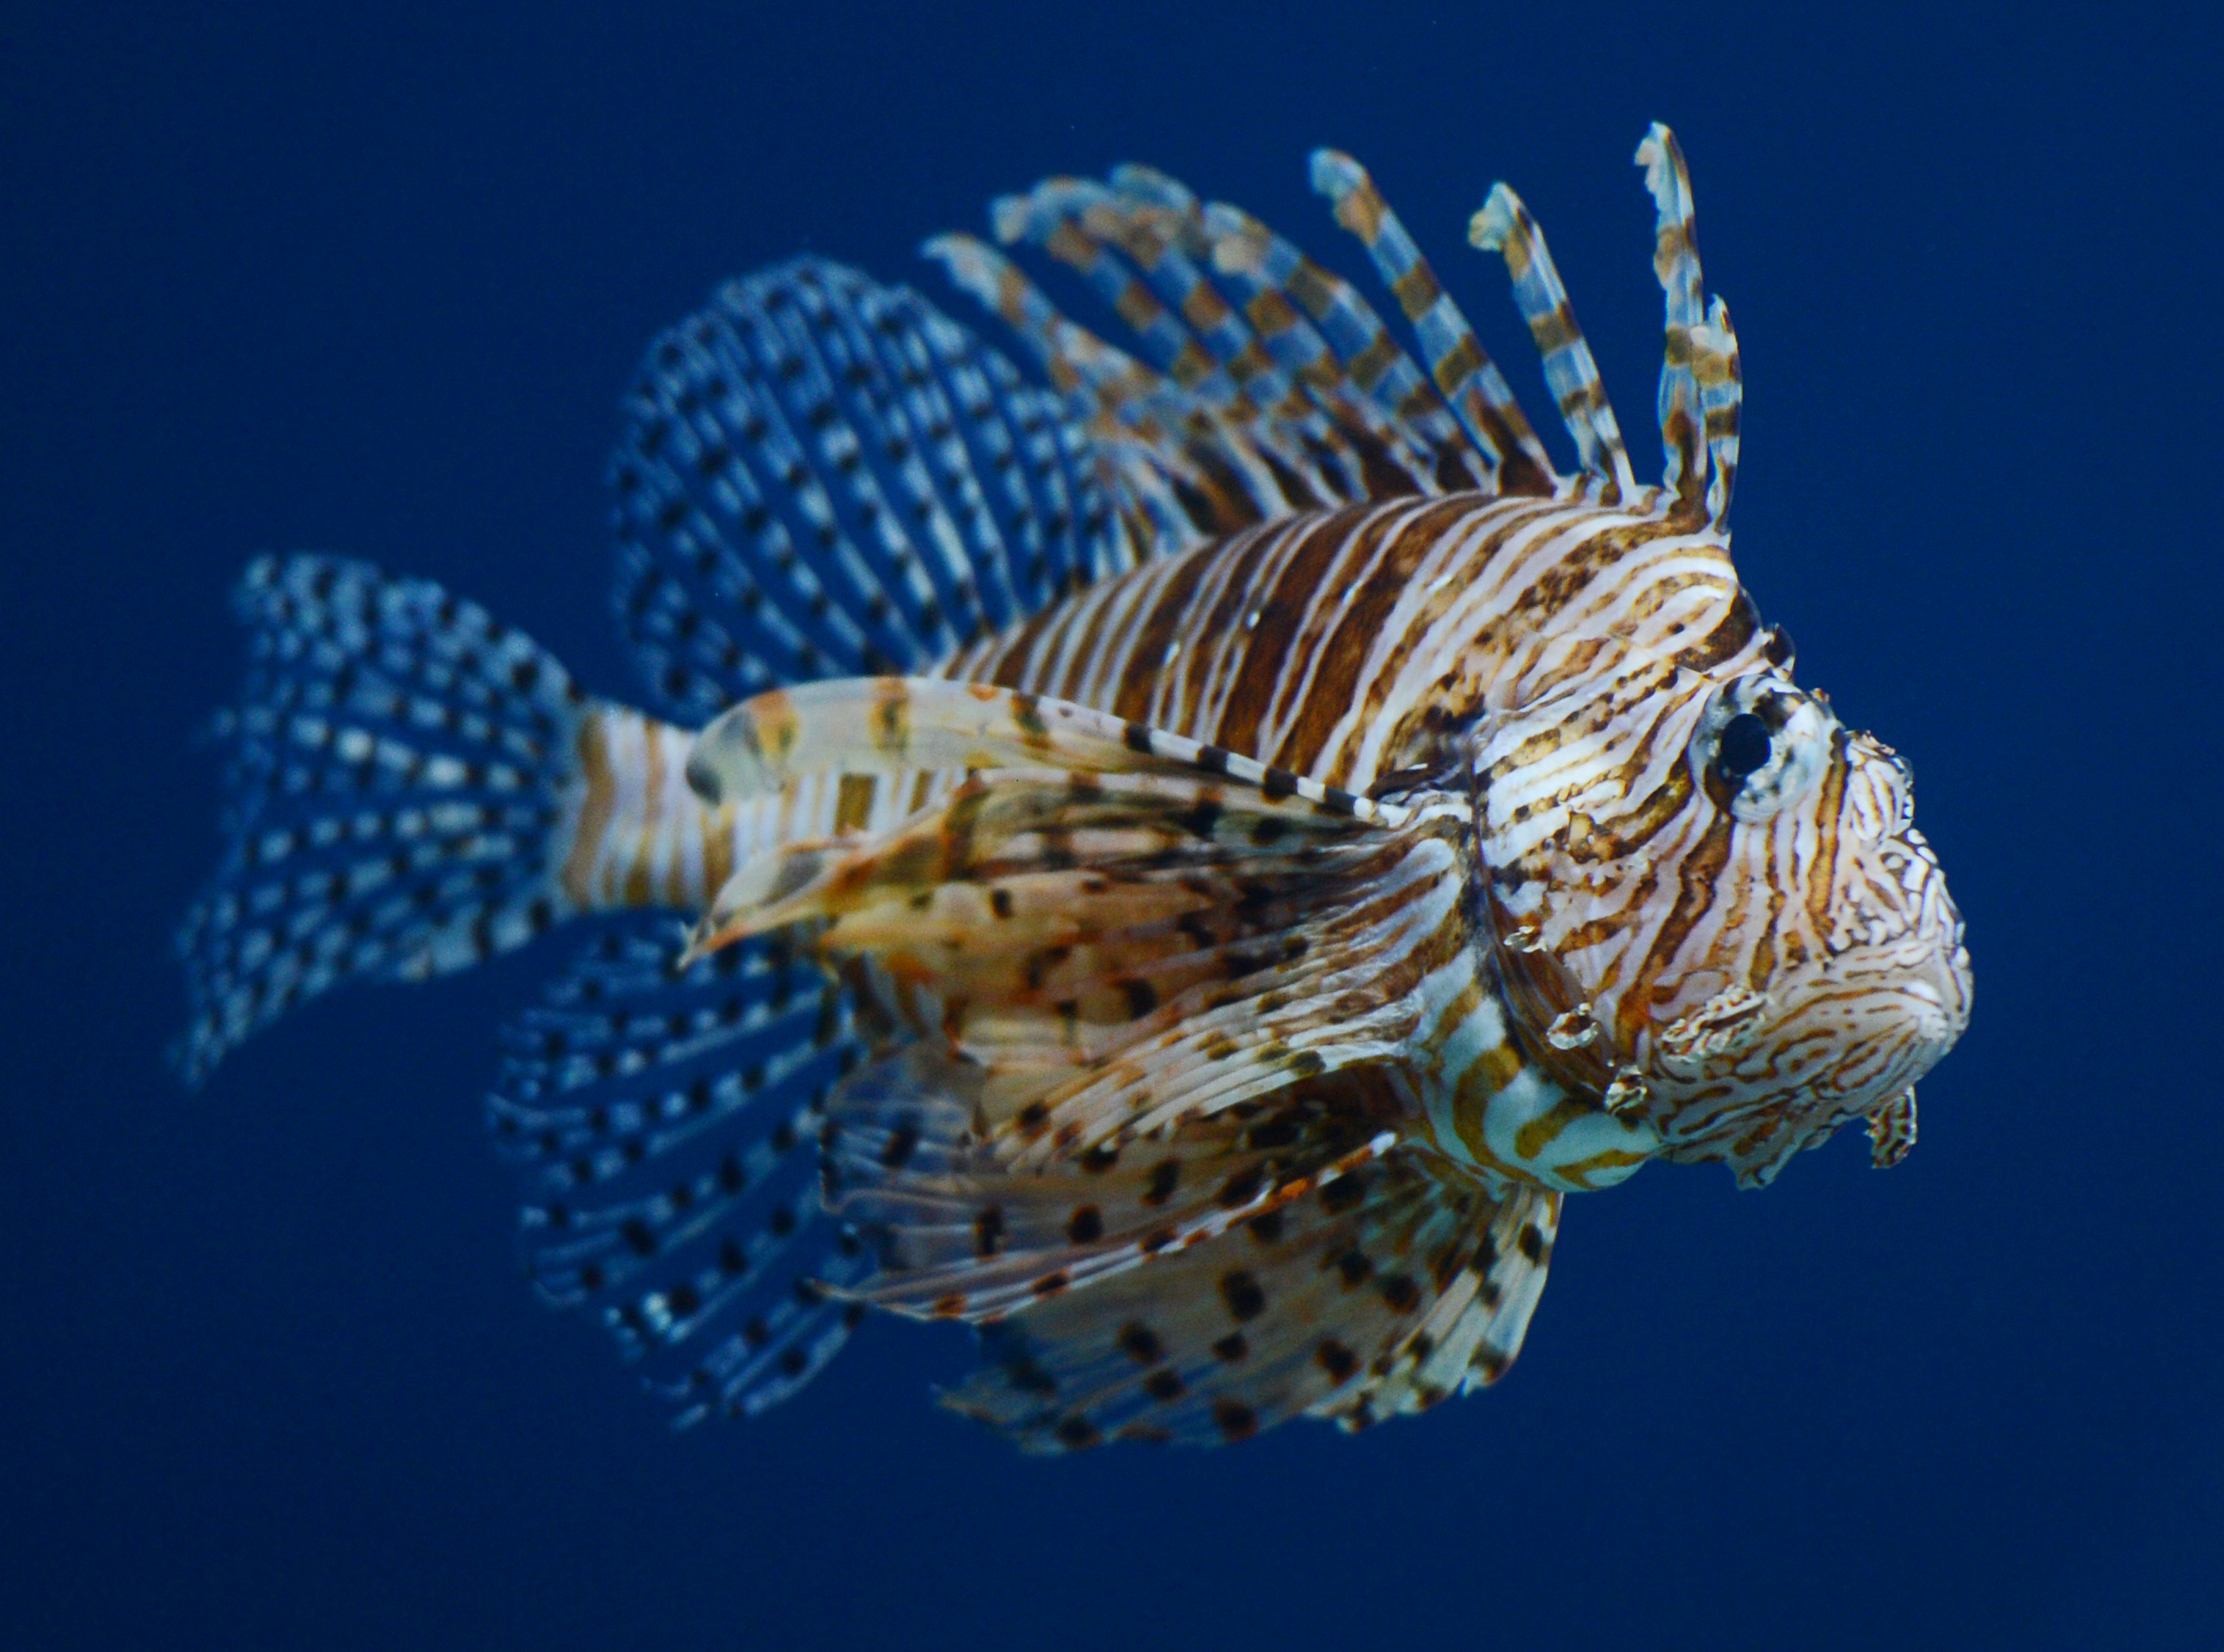 A winged lionfish at the Beijing Aquarium  on May 30, 2012.